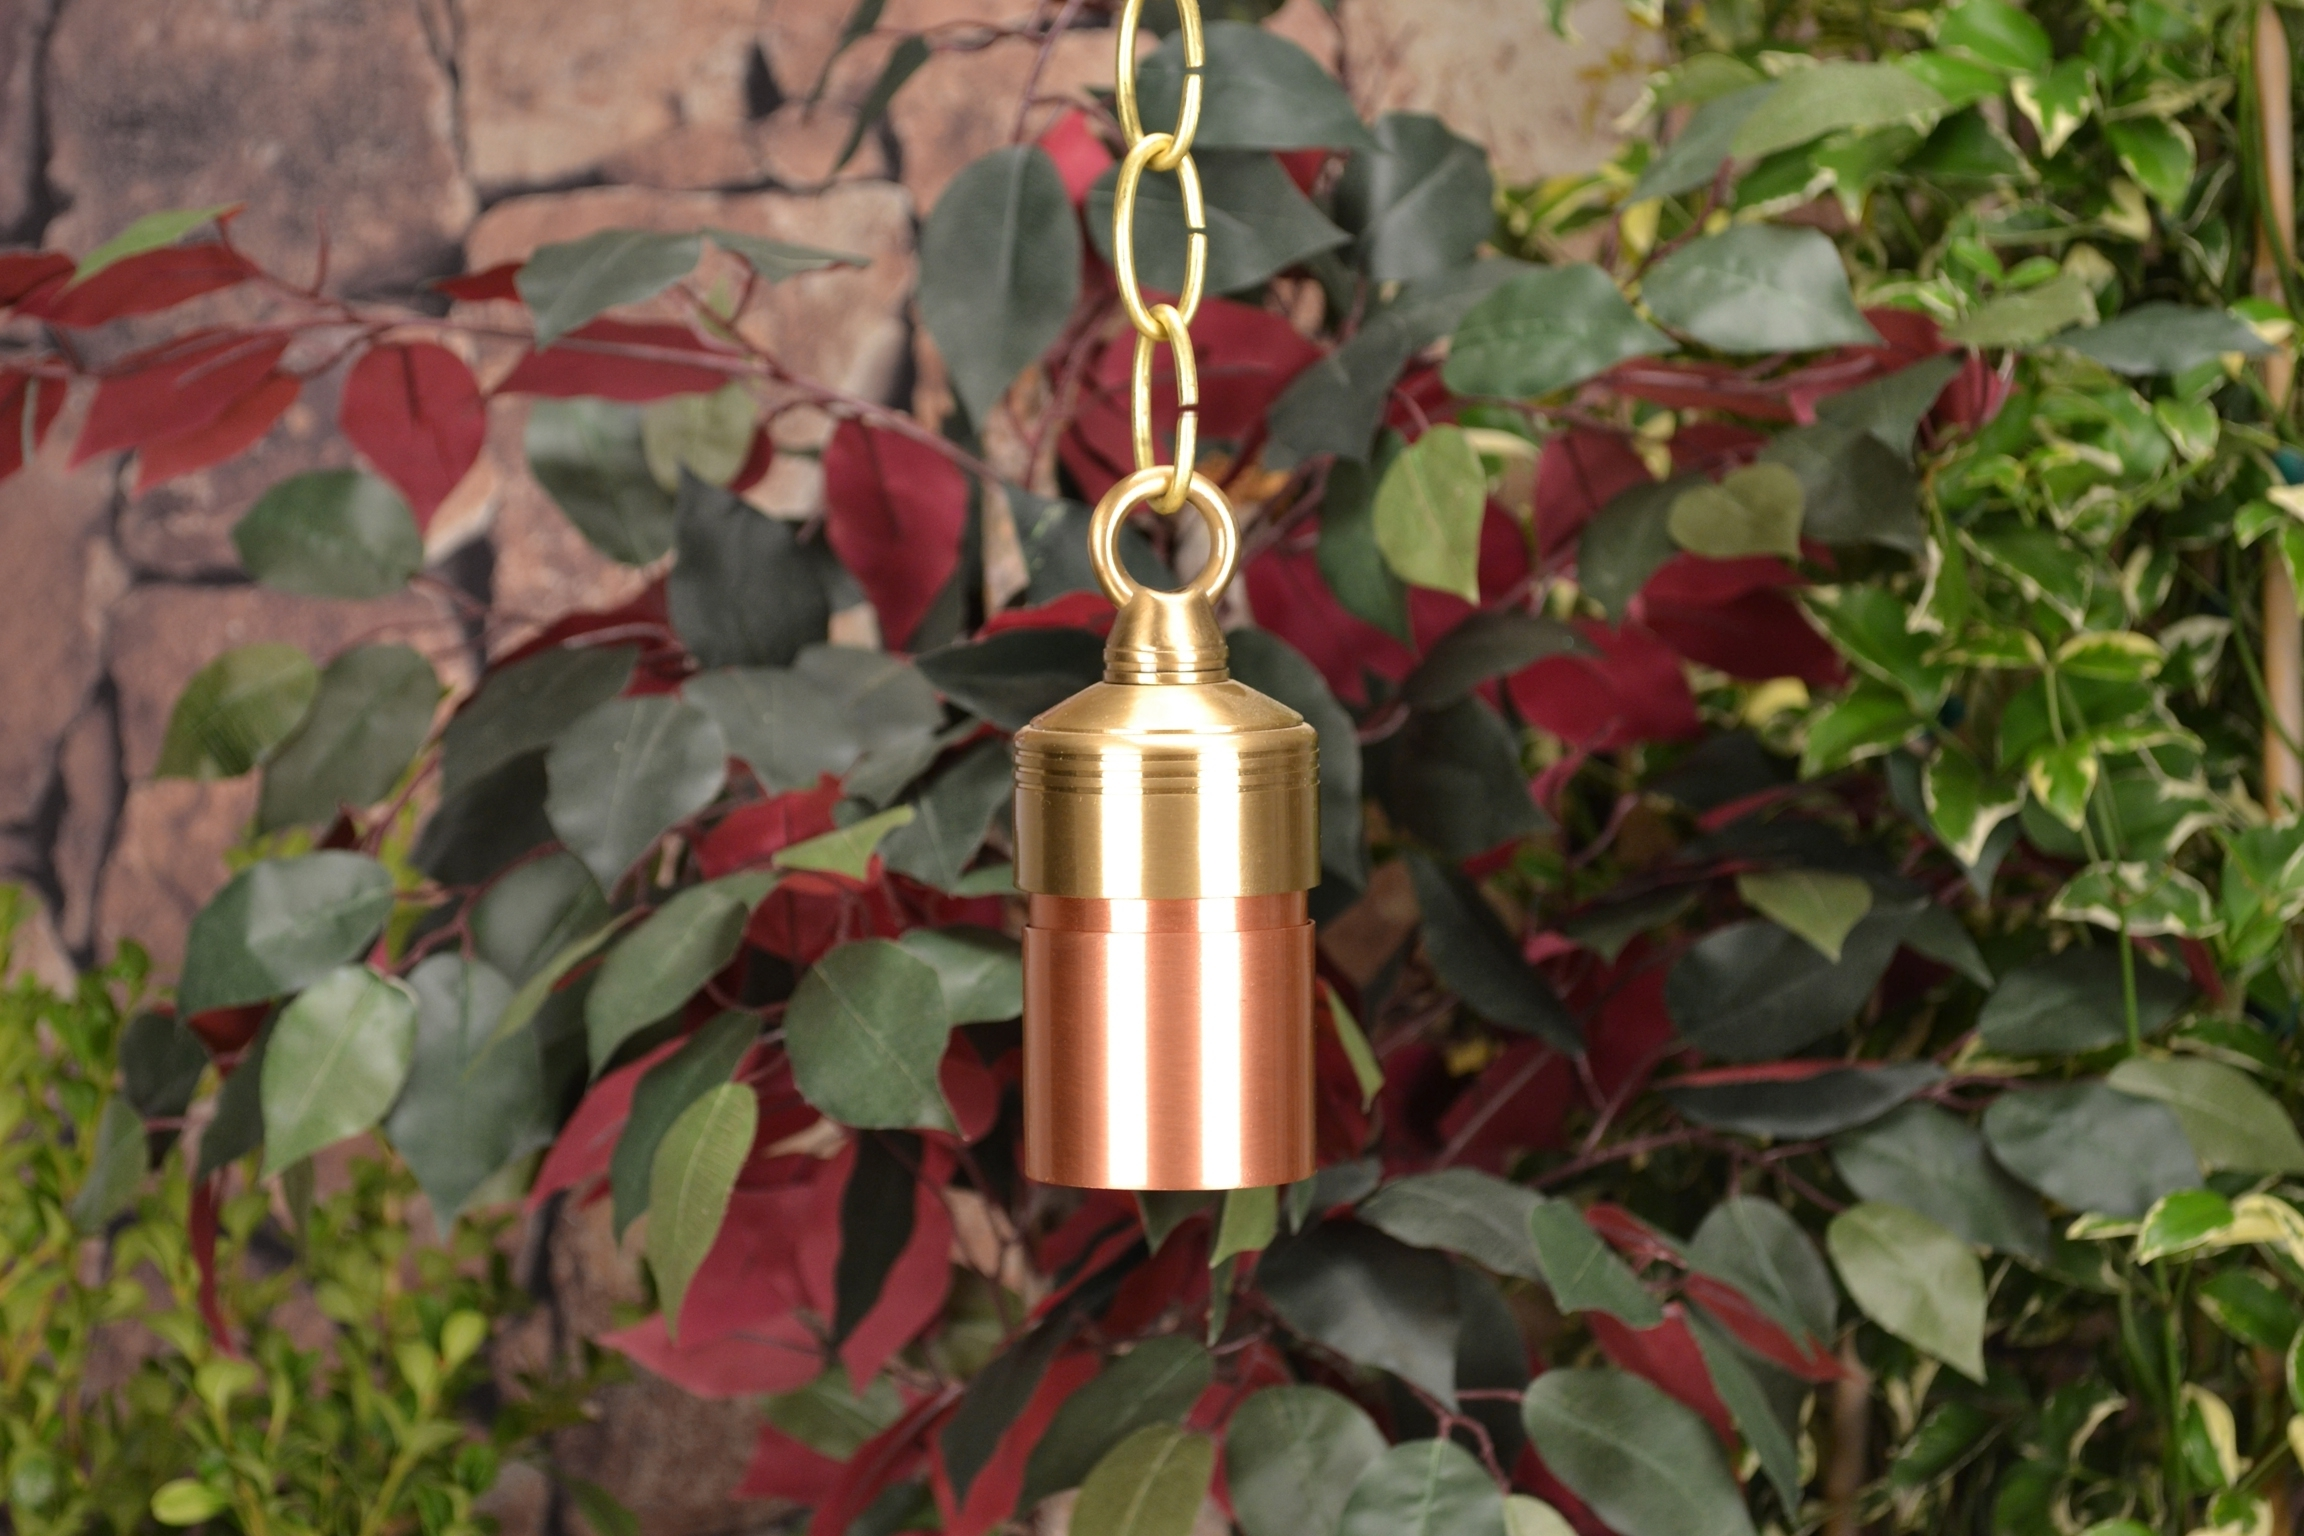 Outdoor Hanging Low Voltage Lights Regarding Well Known Outdoor Low Voltage Hanging Tree Lights • Outdoor Lighting (View 14 of 20)